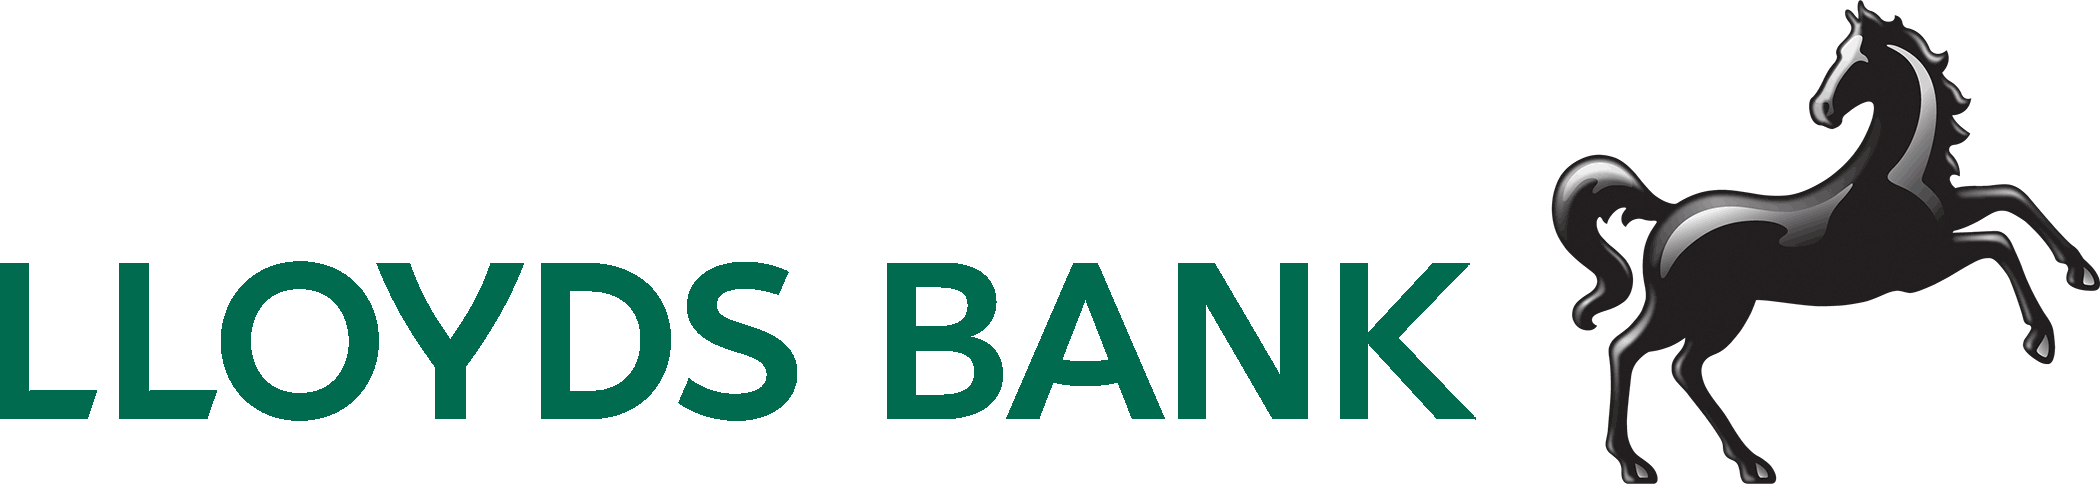 lloyds bank treasurers account application form